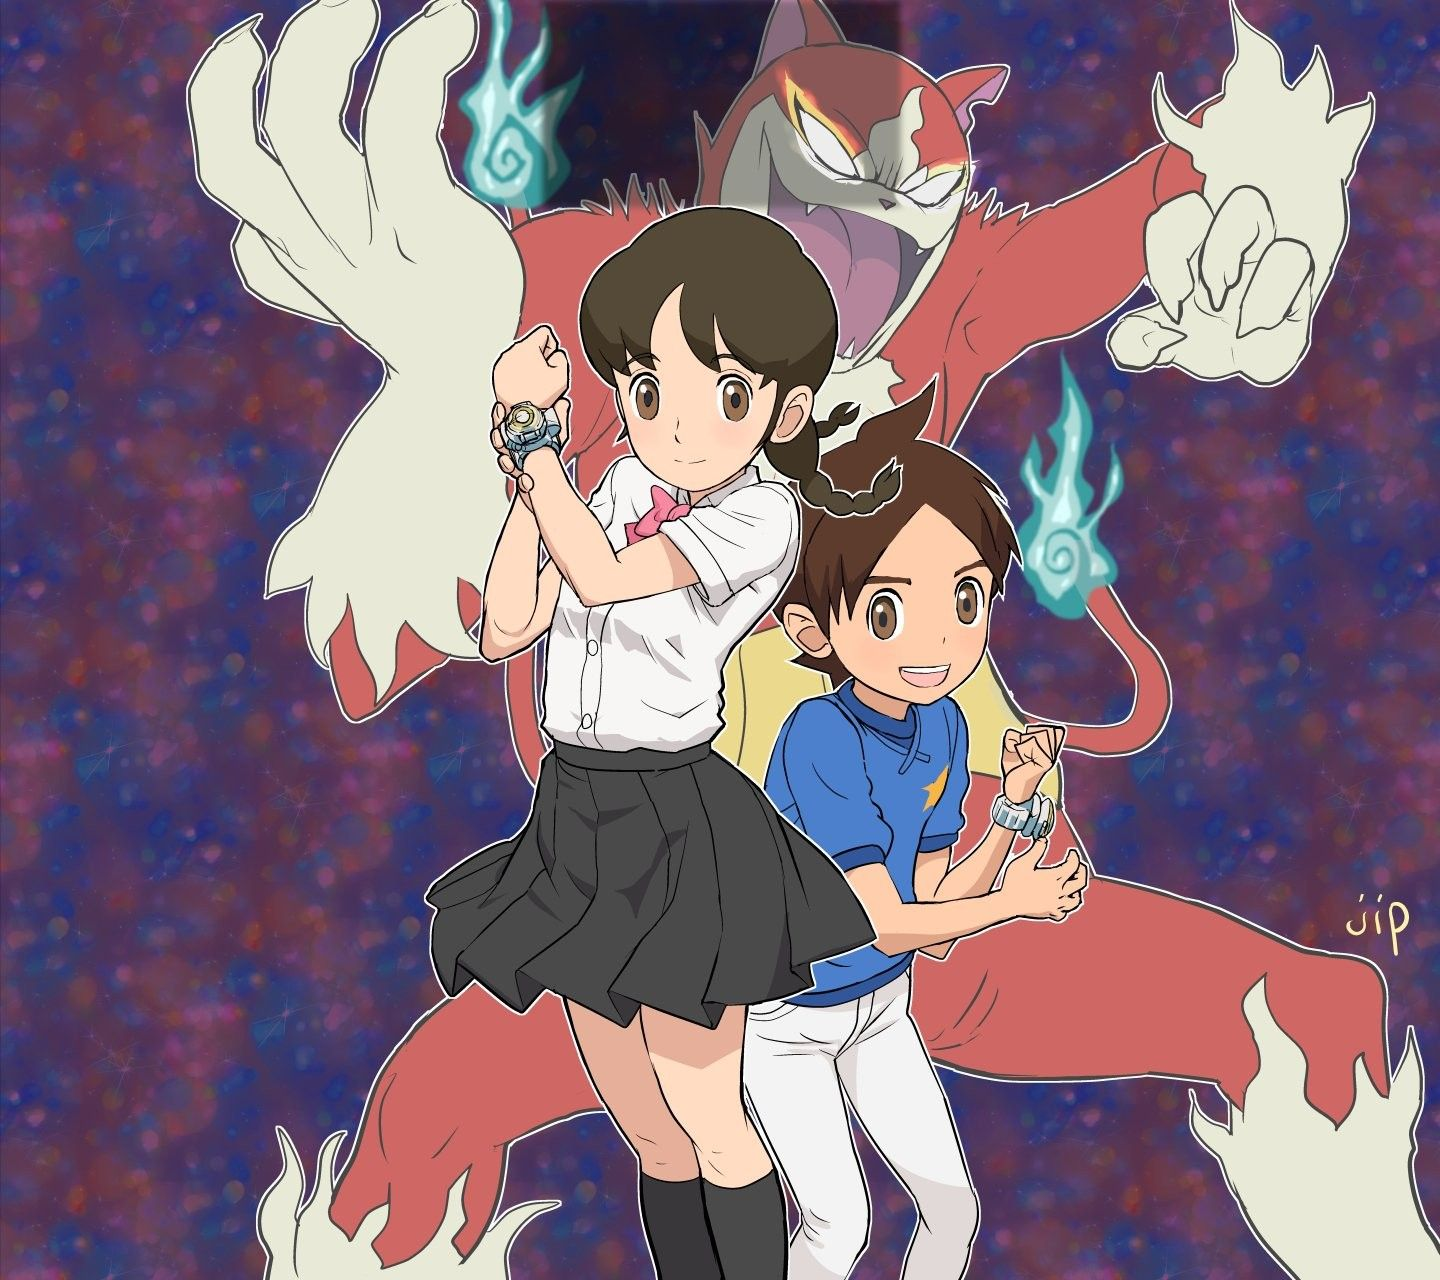 Pin by Katie Waldrop on yokai watch in 2020 Youkai watch